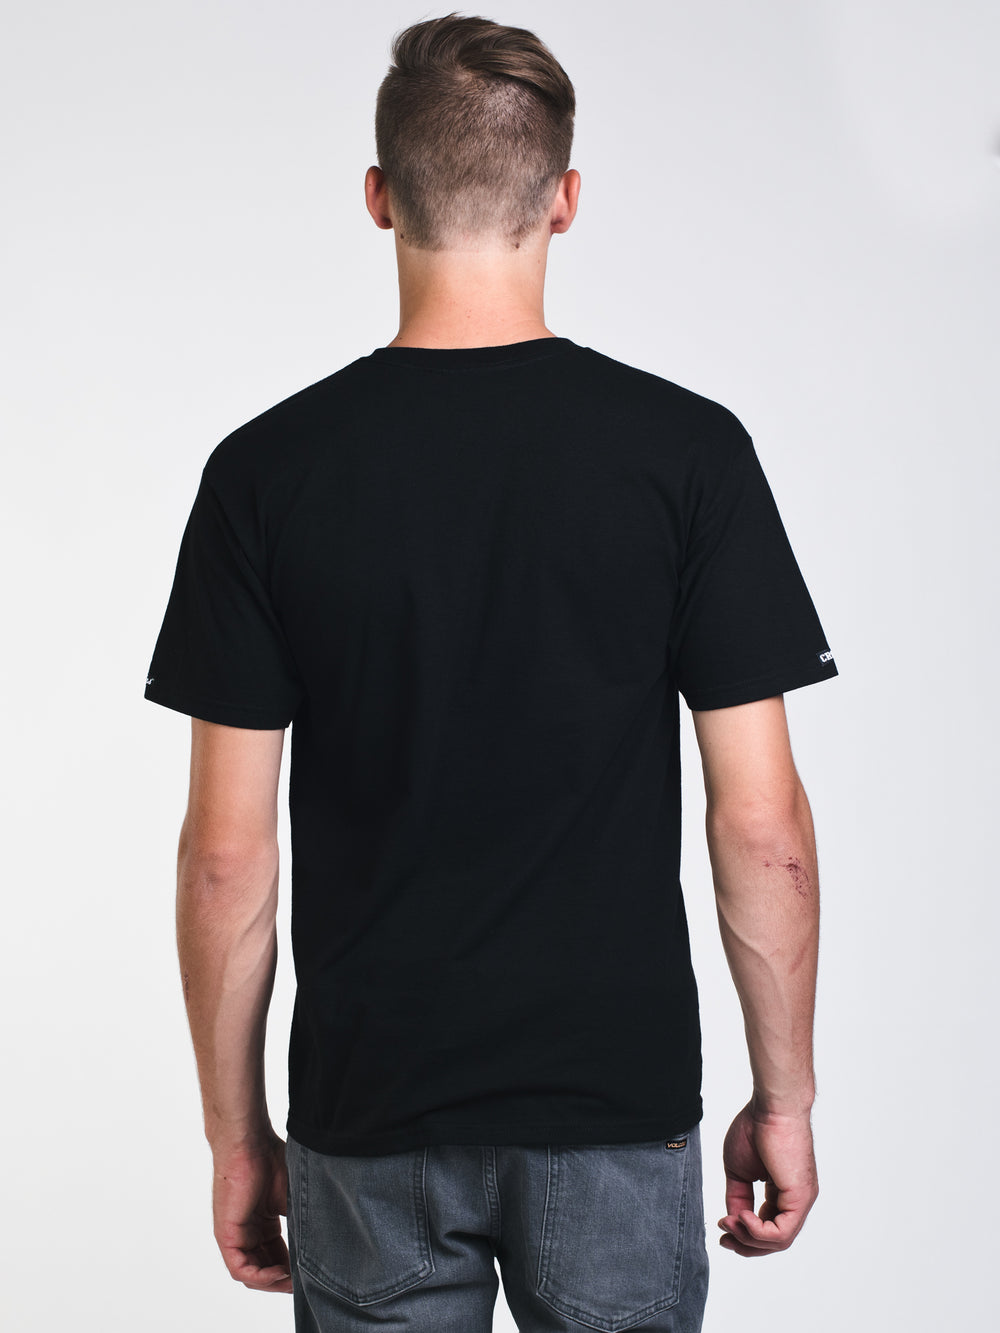 MENS TEAM CROOKS SHORT SLEEVE T-SHIRT